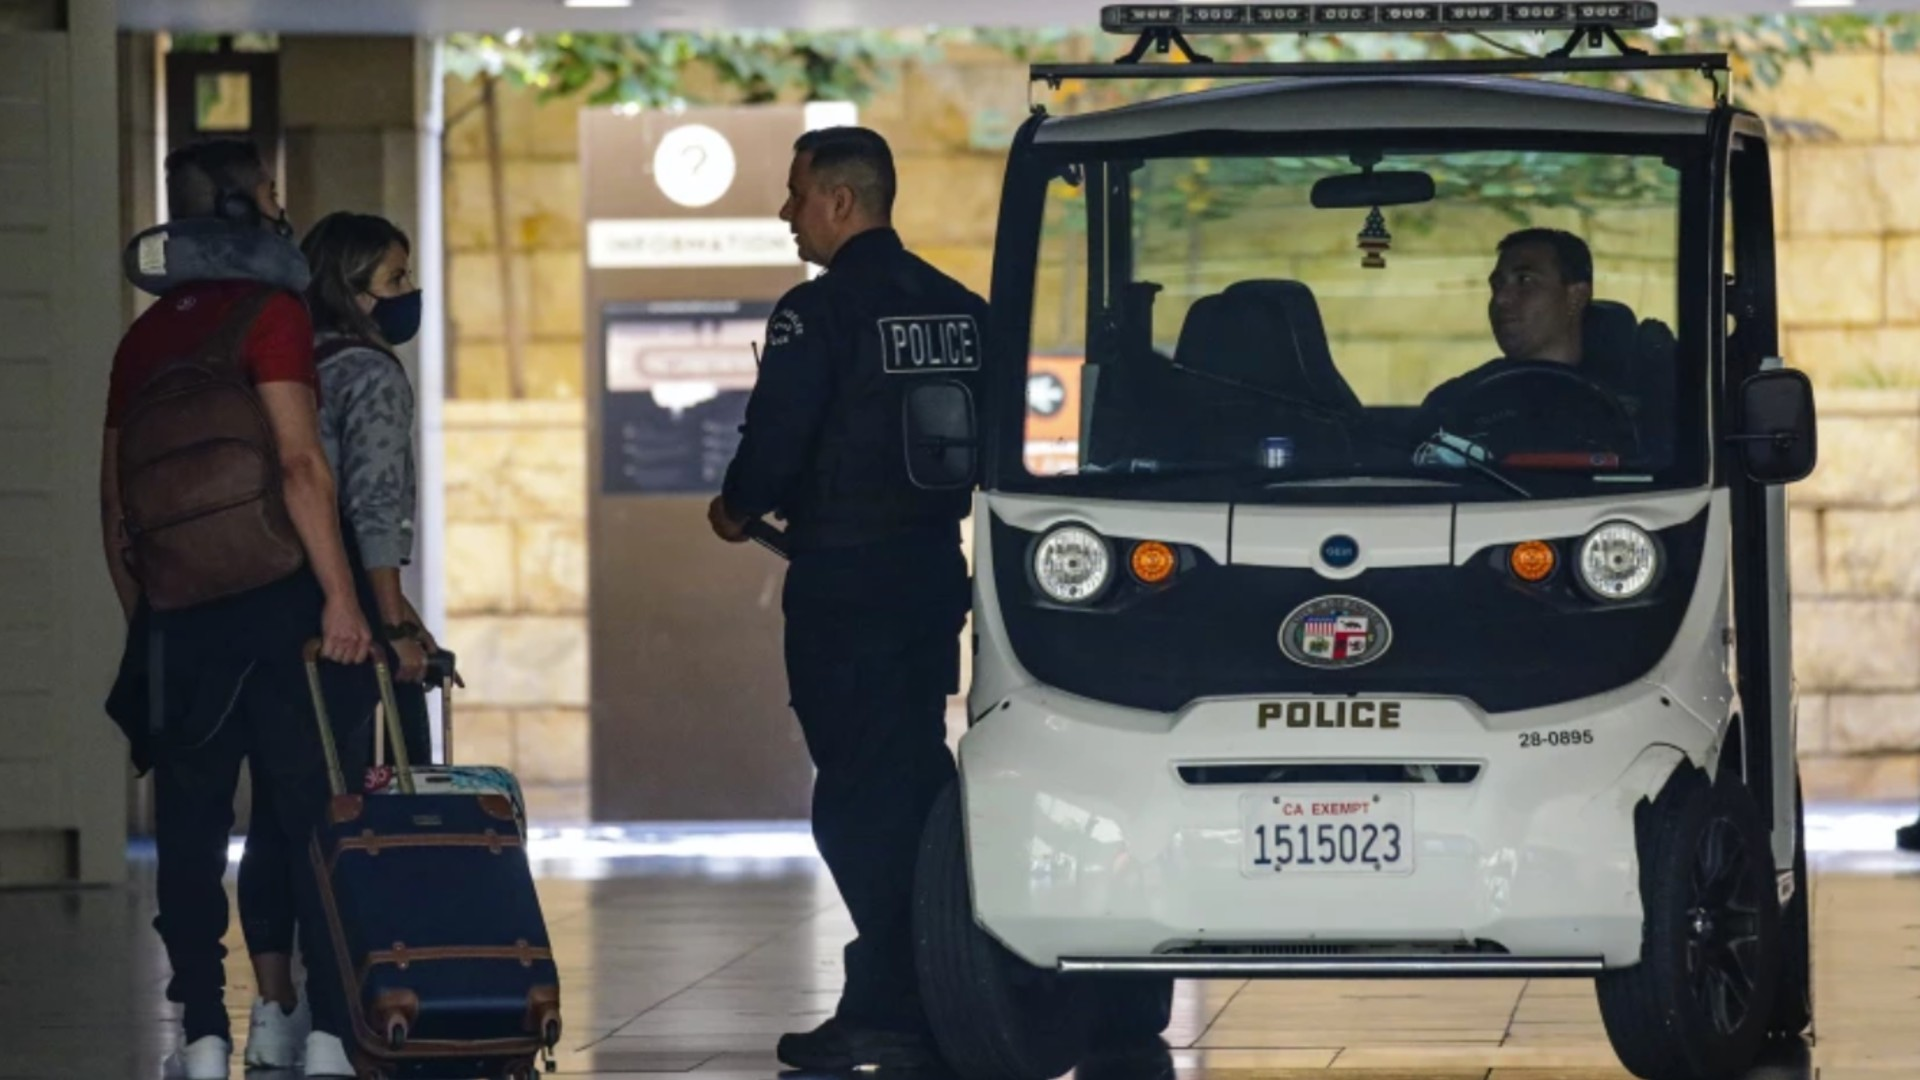 Unmasked LAPD officers patrol Union Station on Aug. 11. (Irfan Khan / Los Angeles Times)